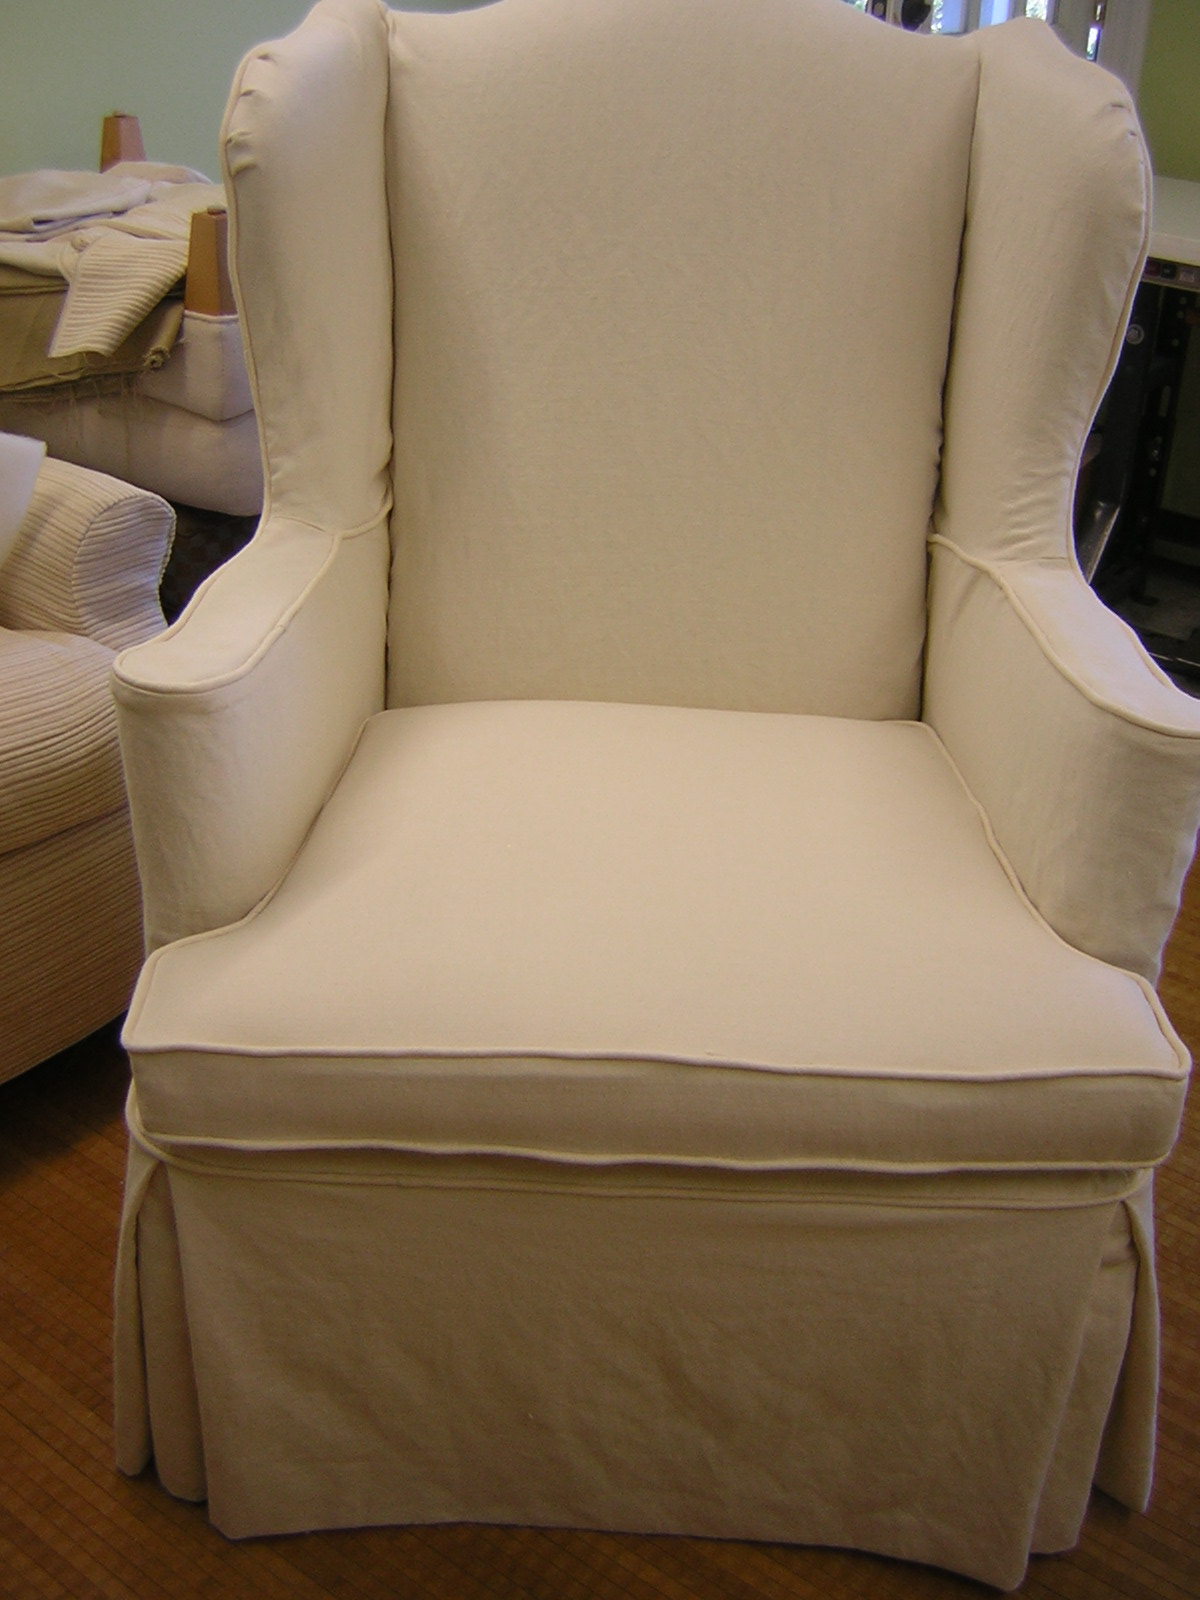 Should I Get Chair Covers For My Wedding How To Clean Aluminum Chairs Slipcover Chic A Wing And Skirt